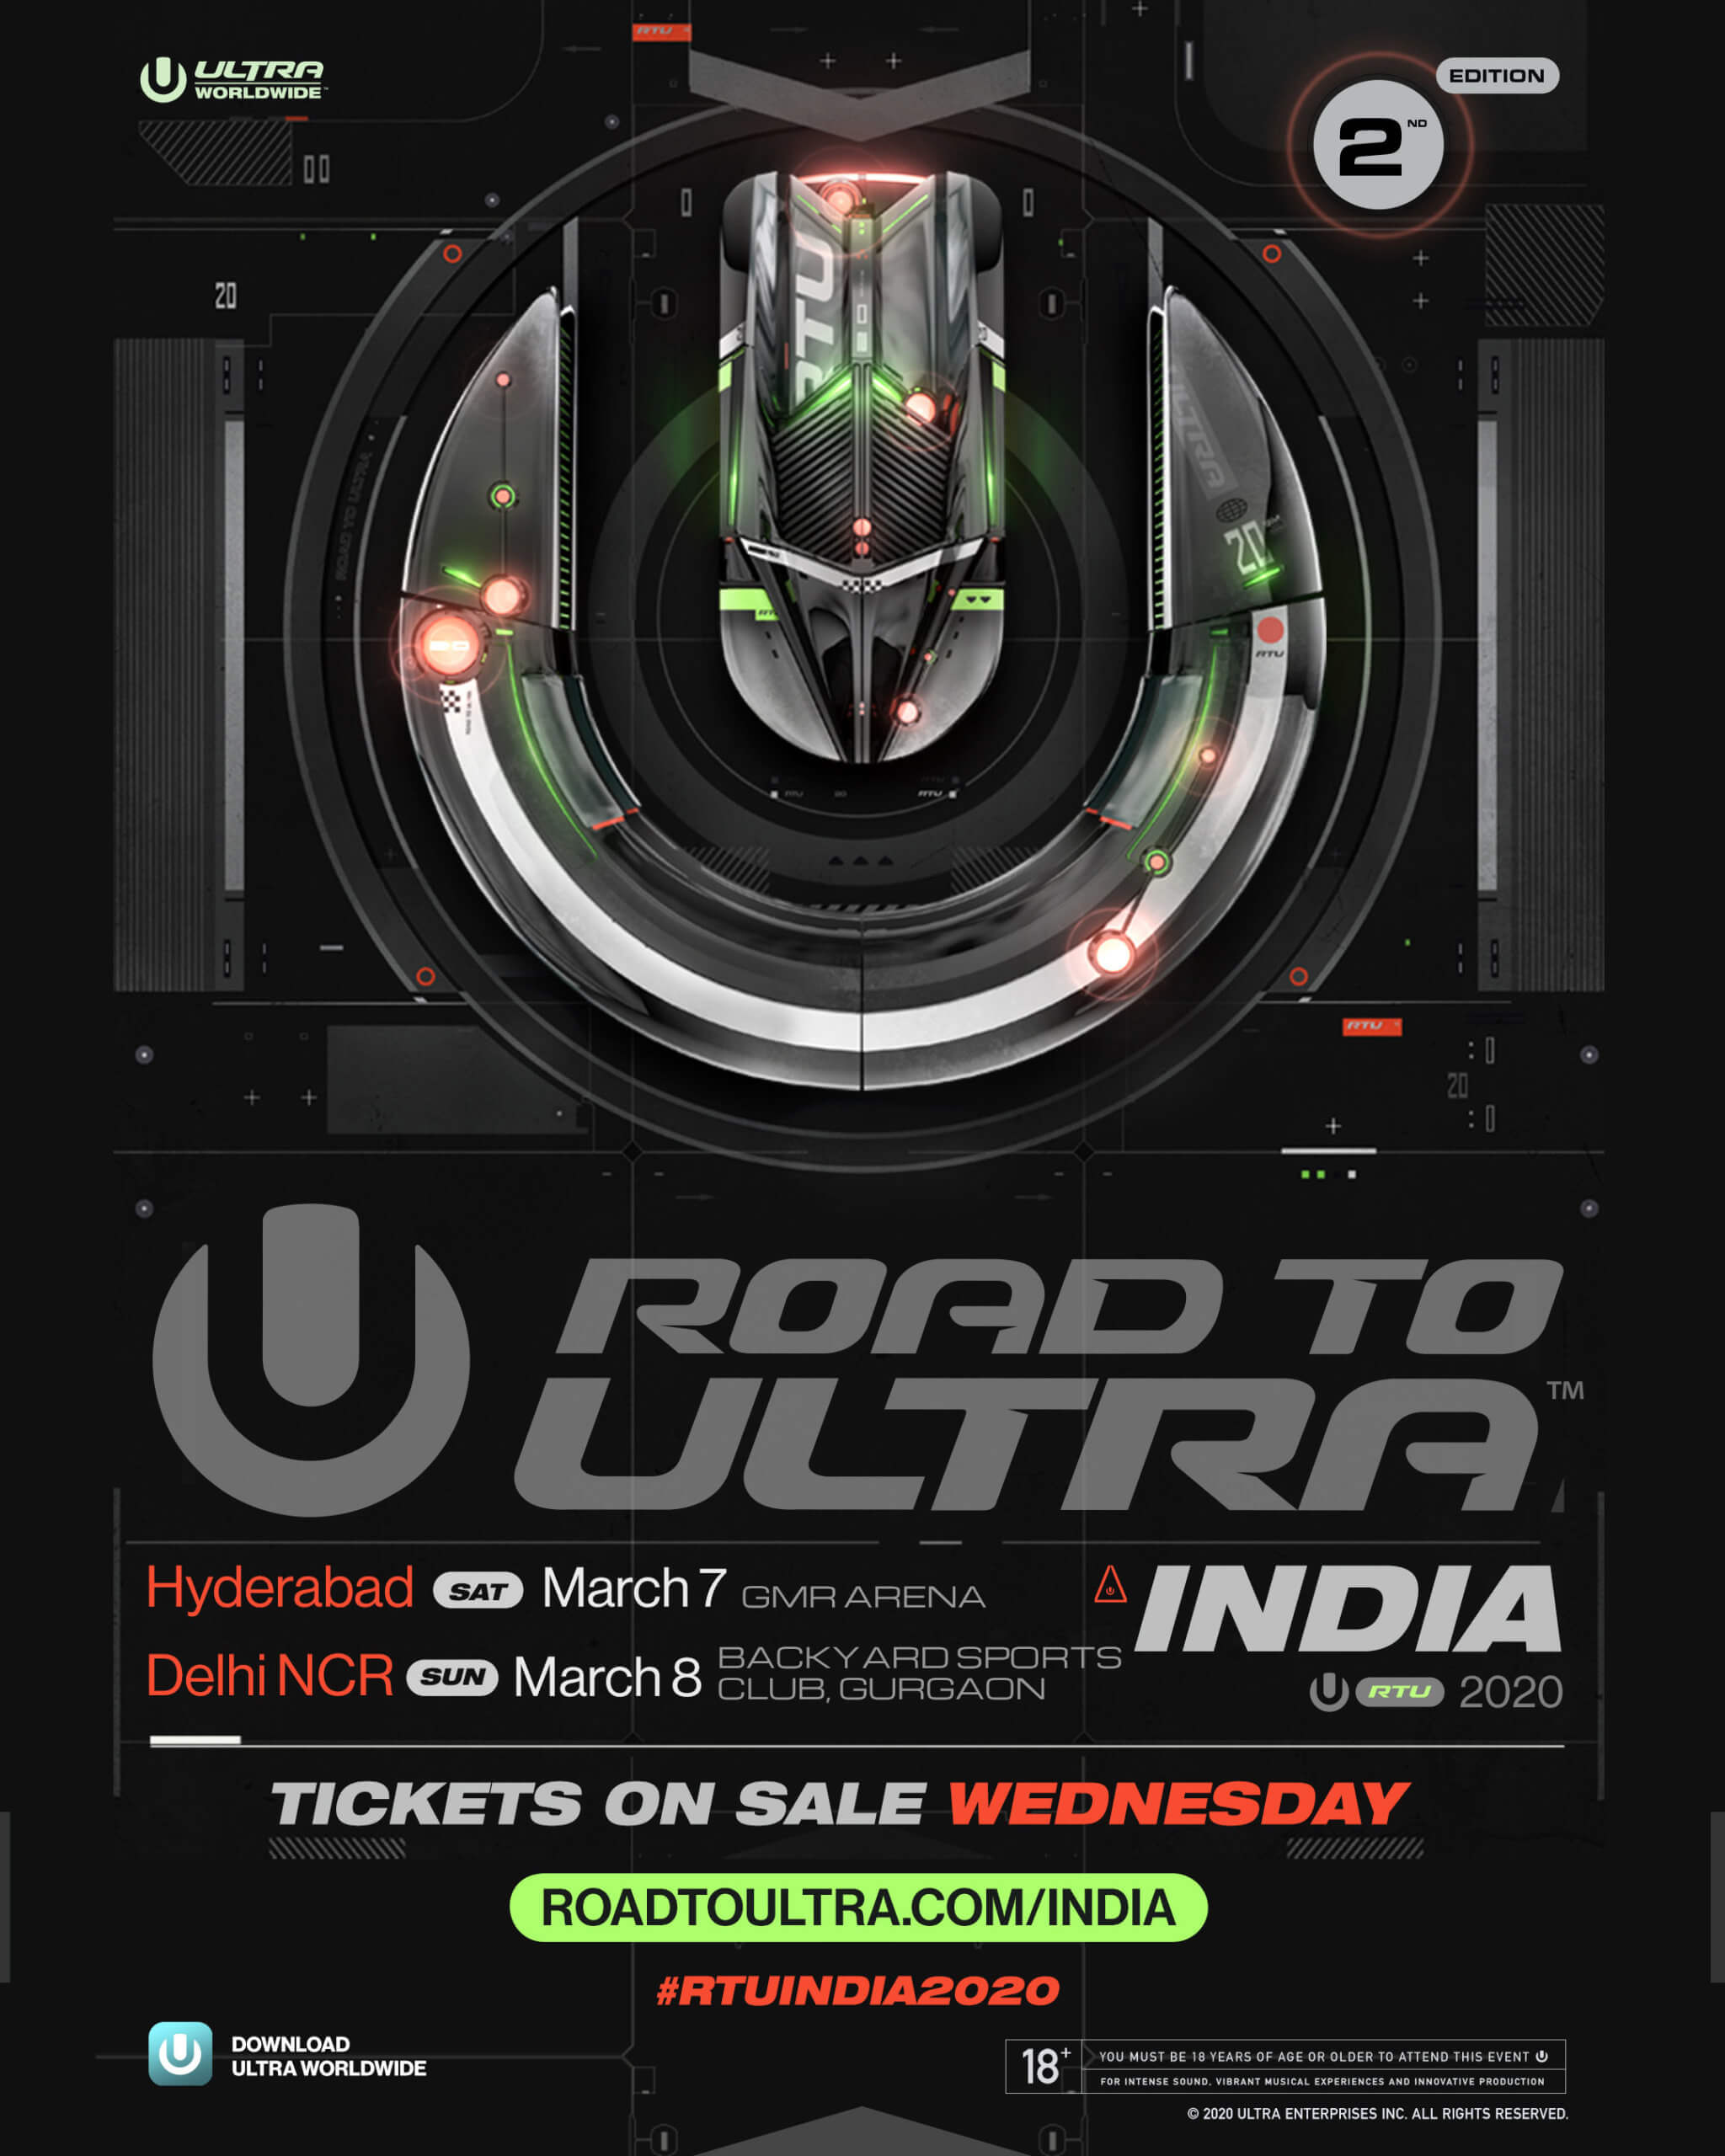 Road to ULTRA Returns to India